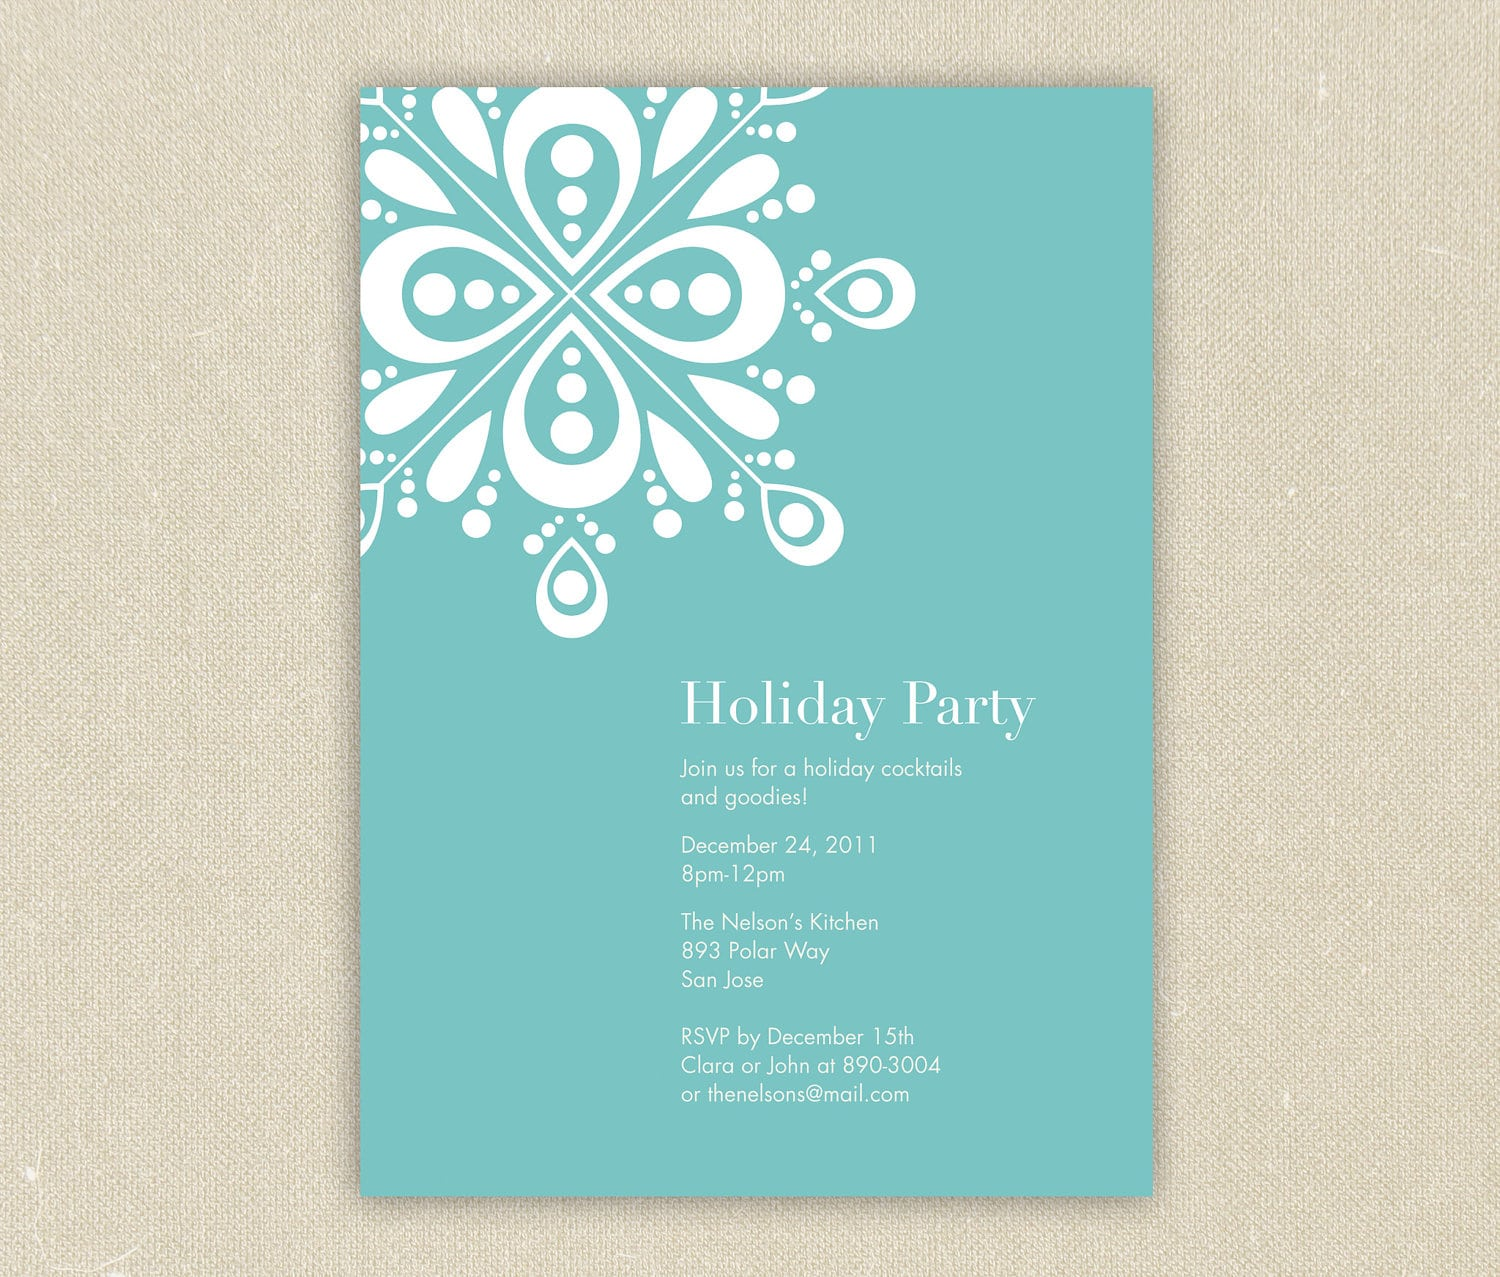 Modern Showflake Christmas, Winter Or Holiday Party Invitation